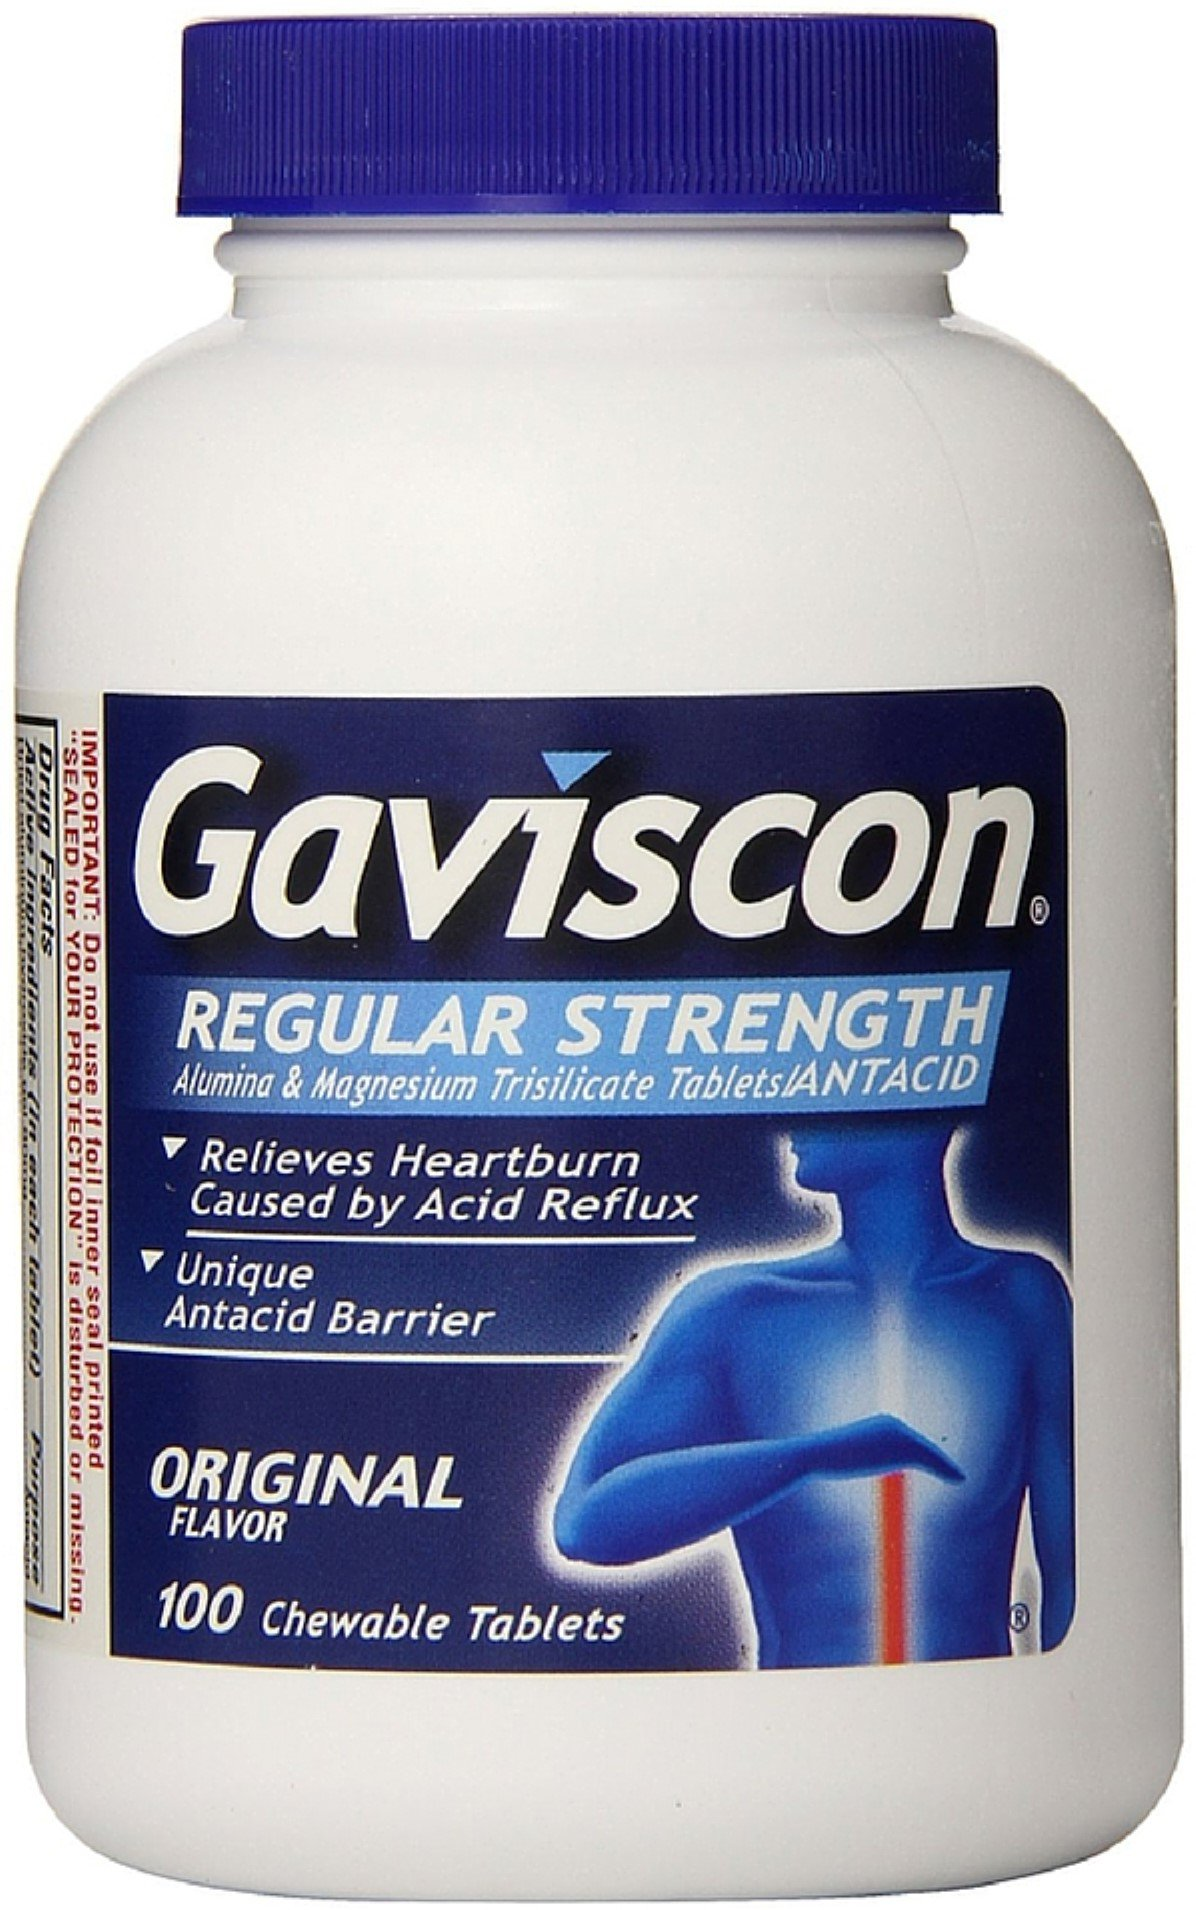 Gaviscon Original Flavor Regular Strength Antacid Chewable Tablets 100 ct (Pack of 12) by Gaviscon